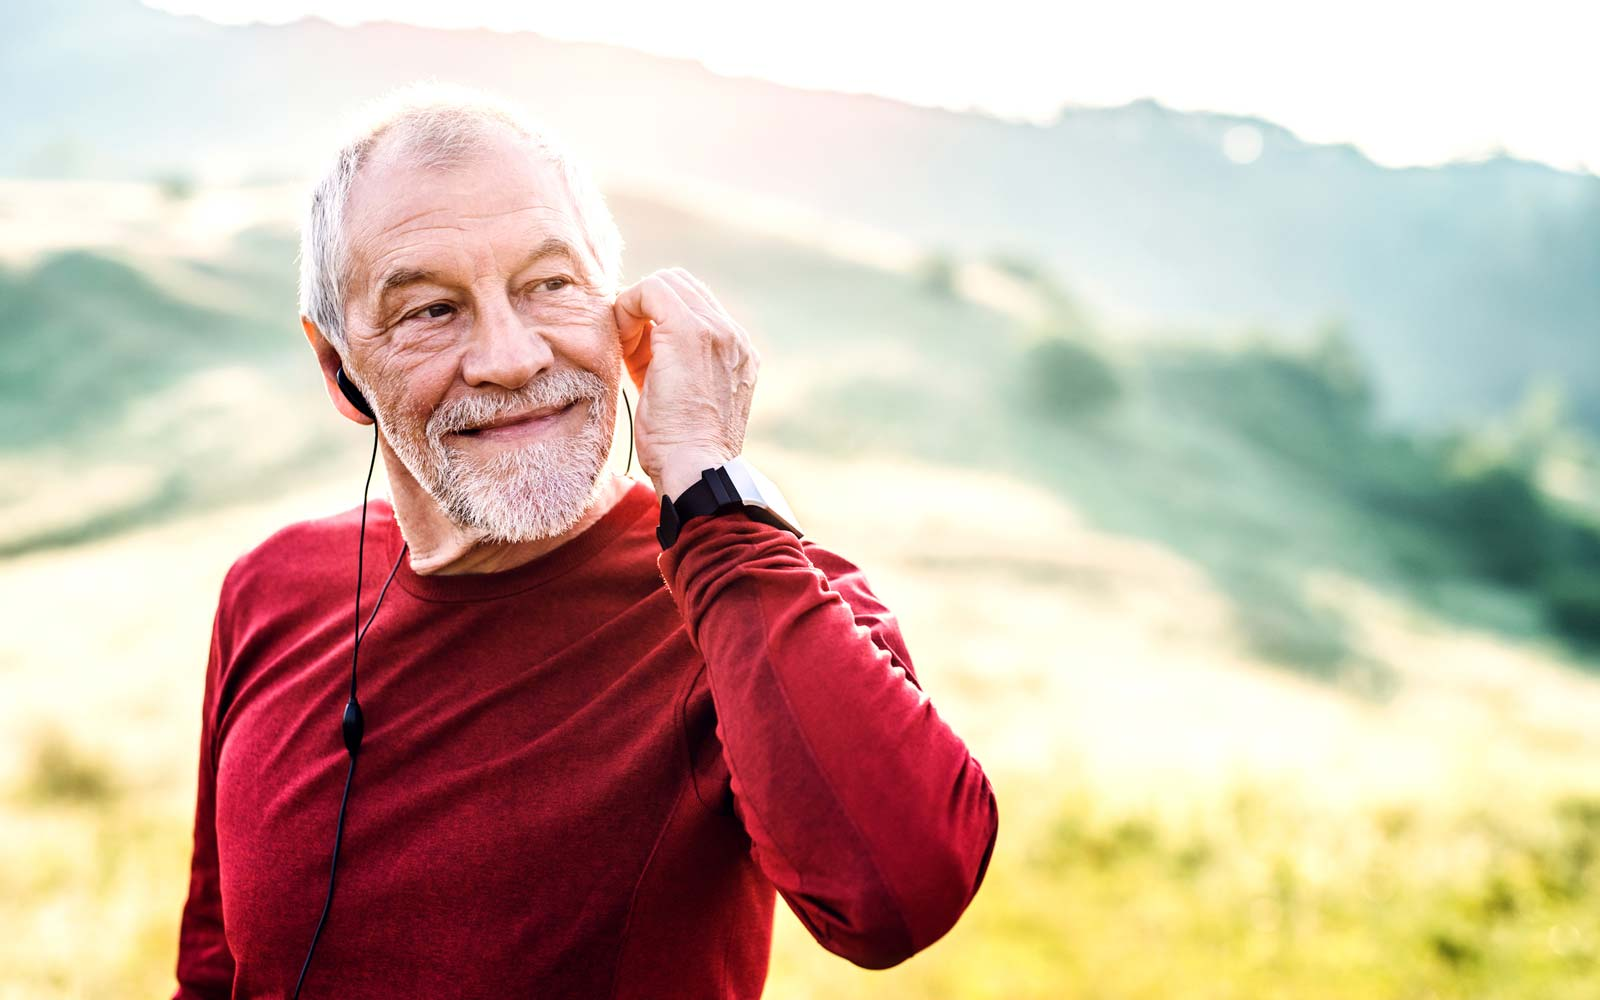 A portrait of an active senior man with earphones outdoors in nature in the foggy morning. Copy space.